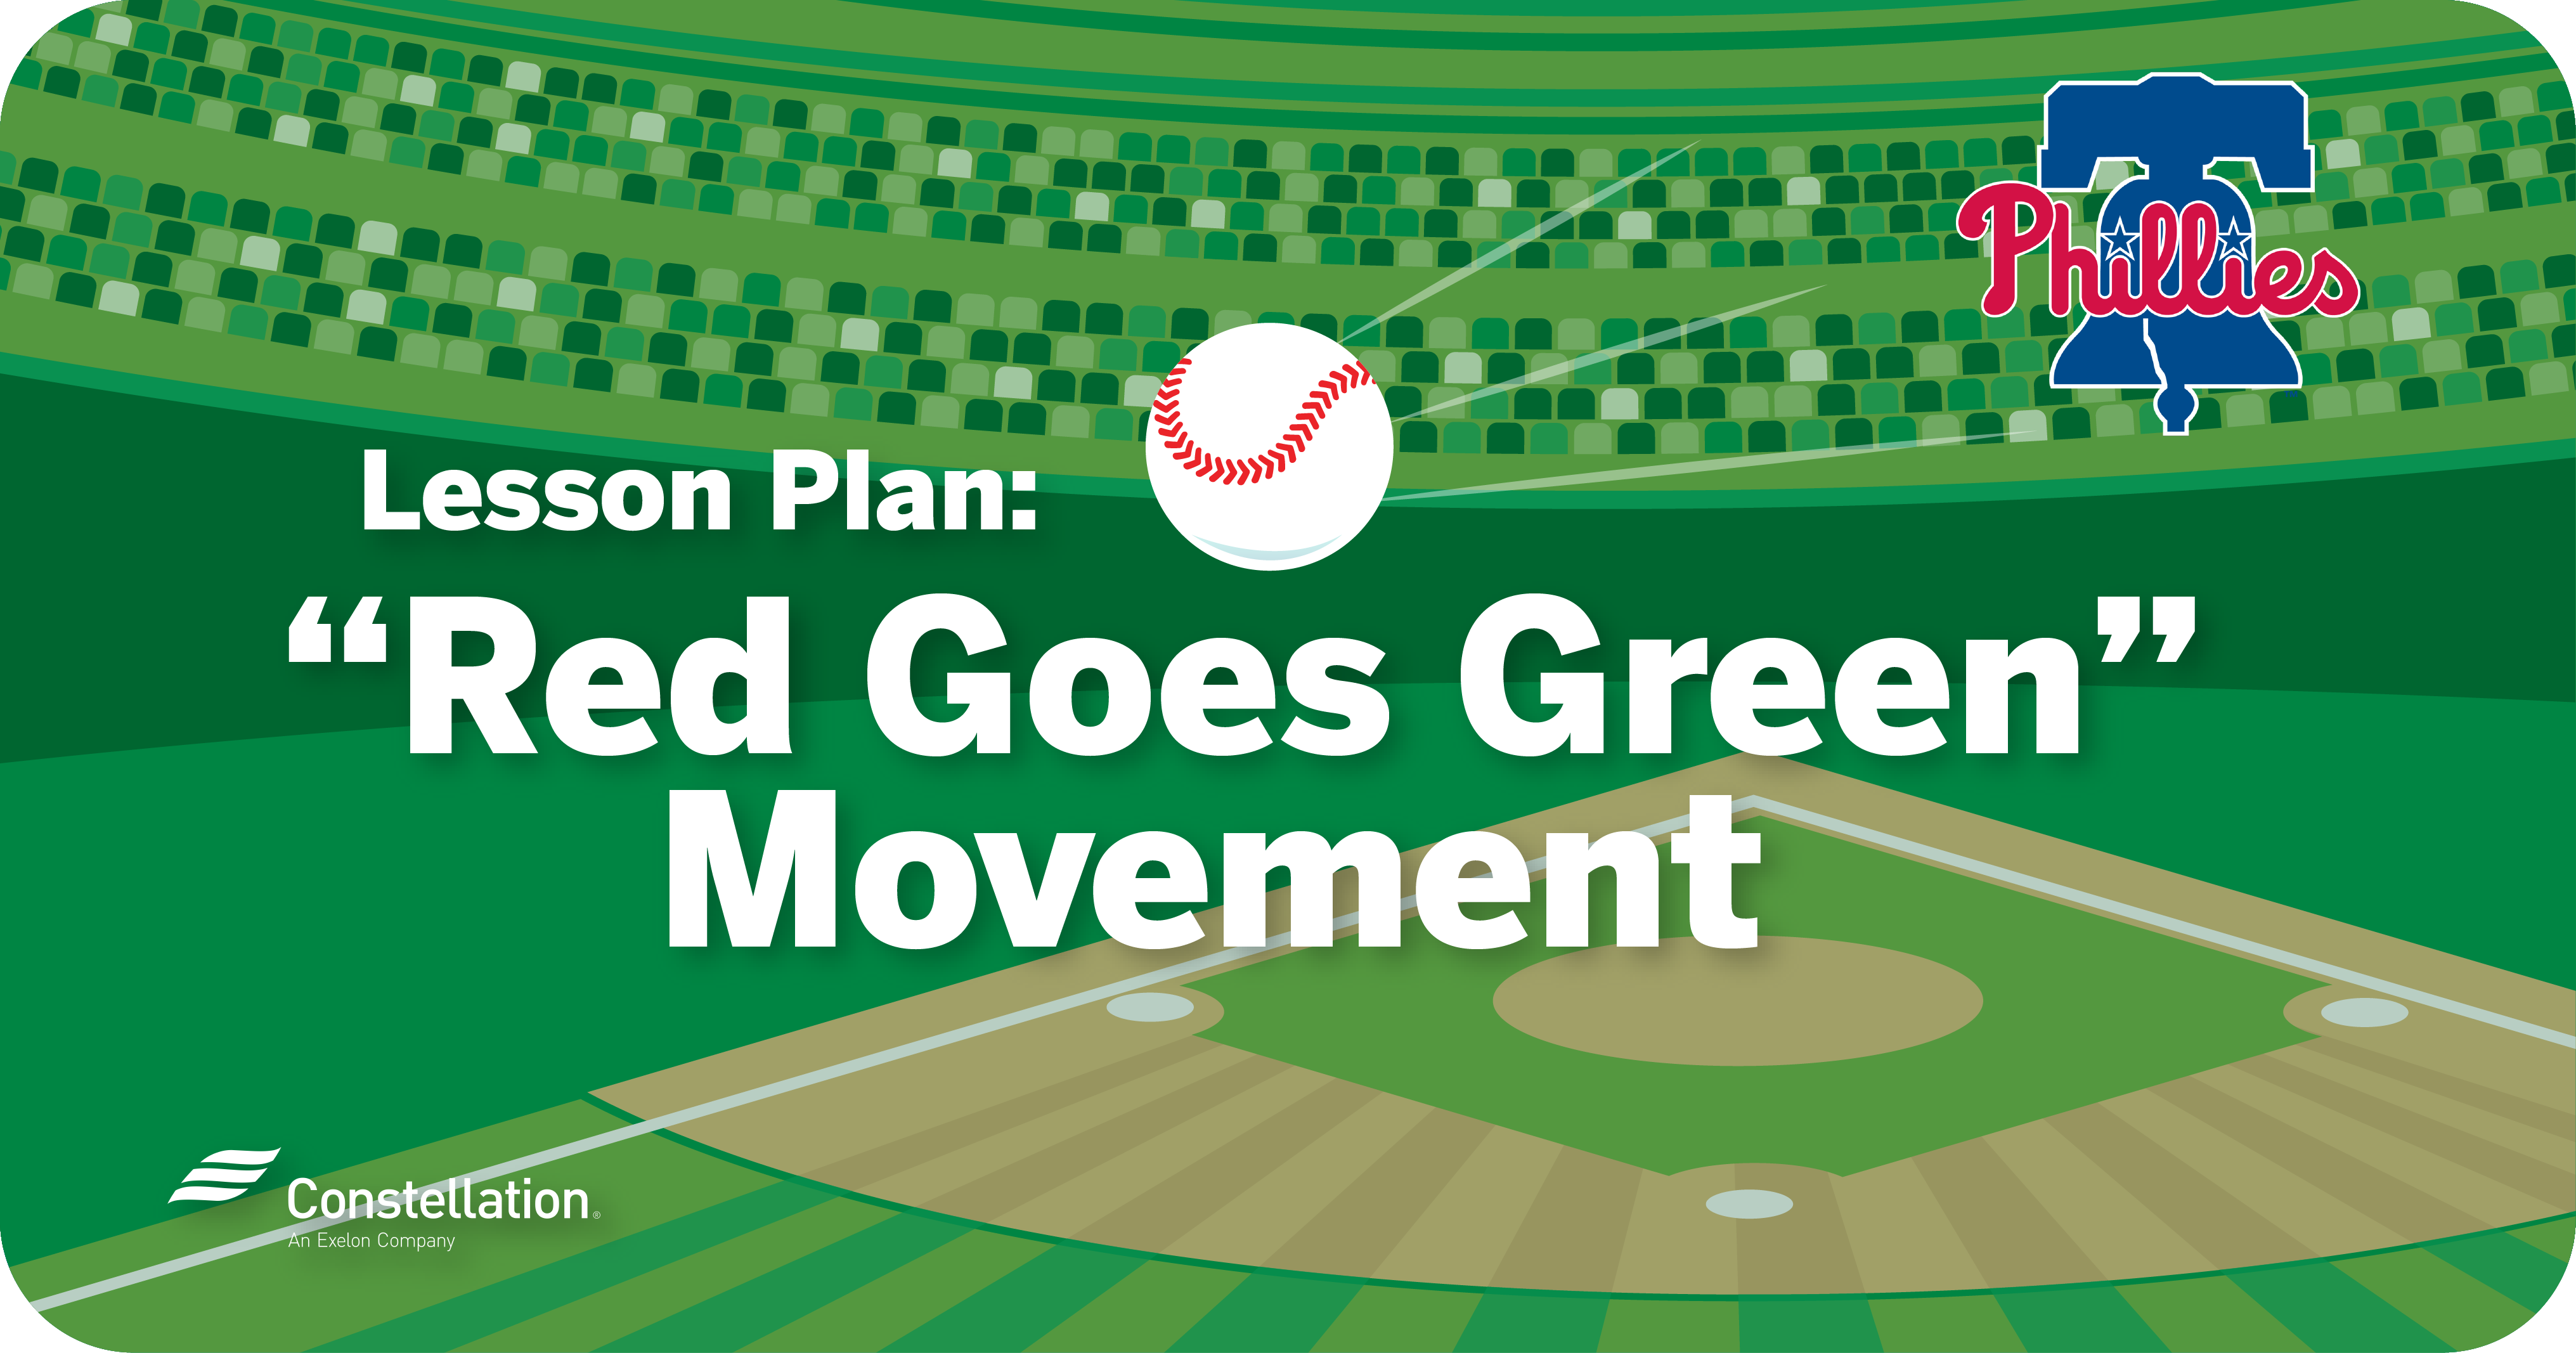 Lesson Plan: Red Goes Green Movement